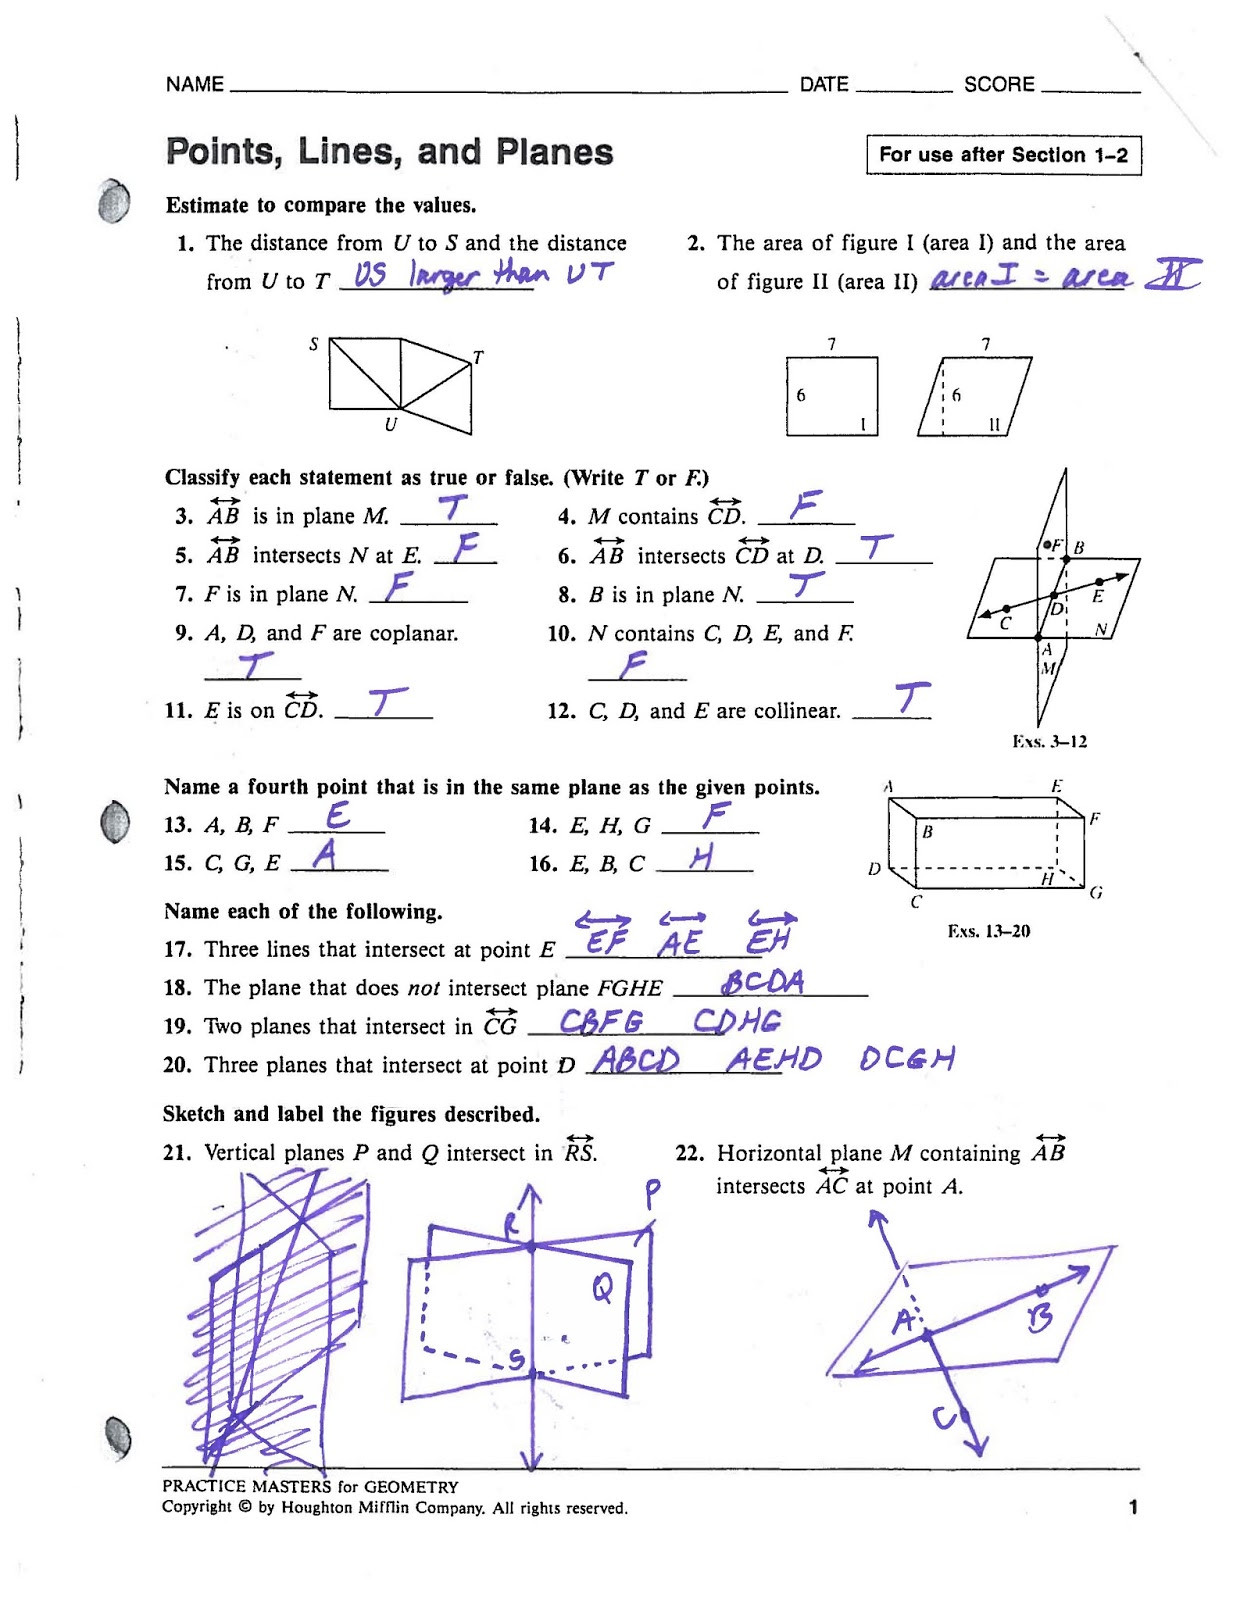 Geometry Proof Practice Worksheet Segment Addition Postulate Practice Answers